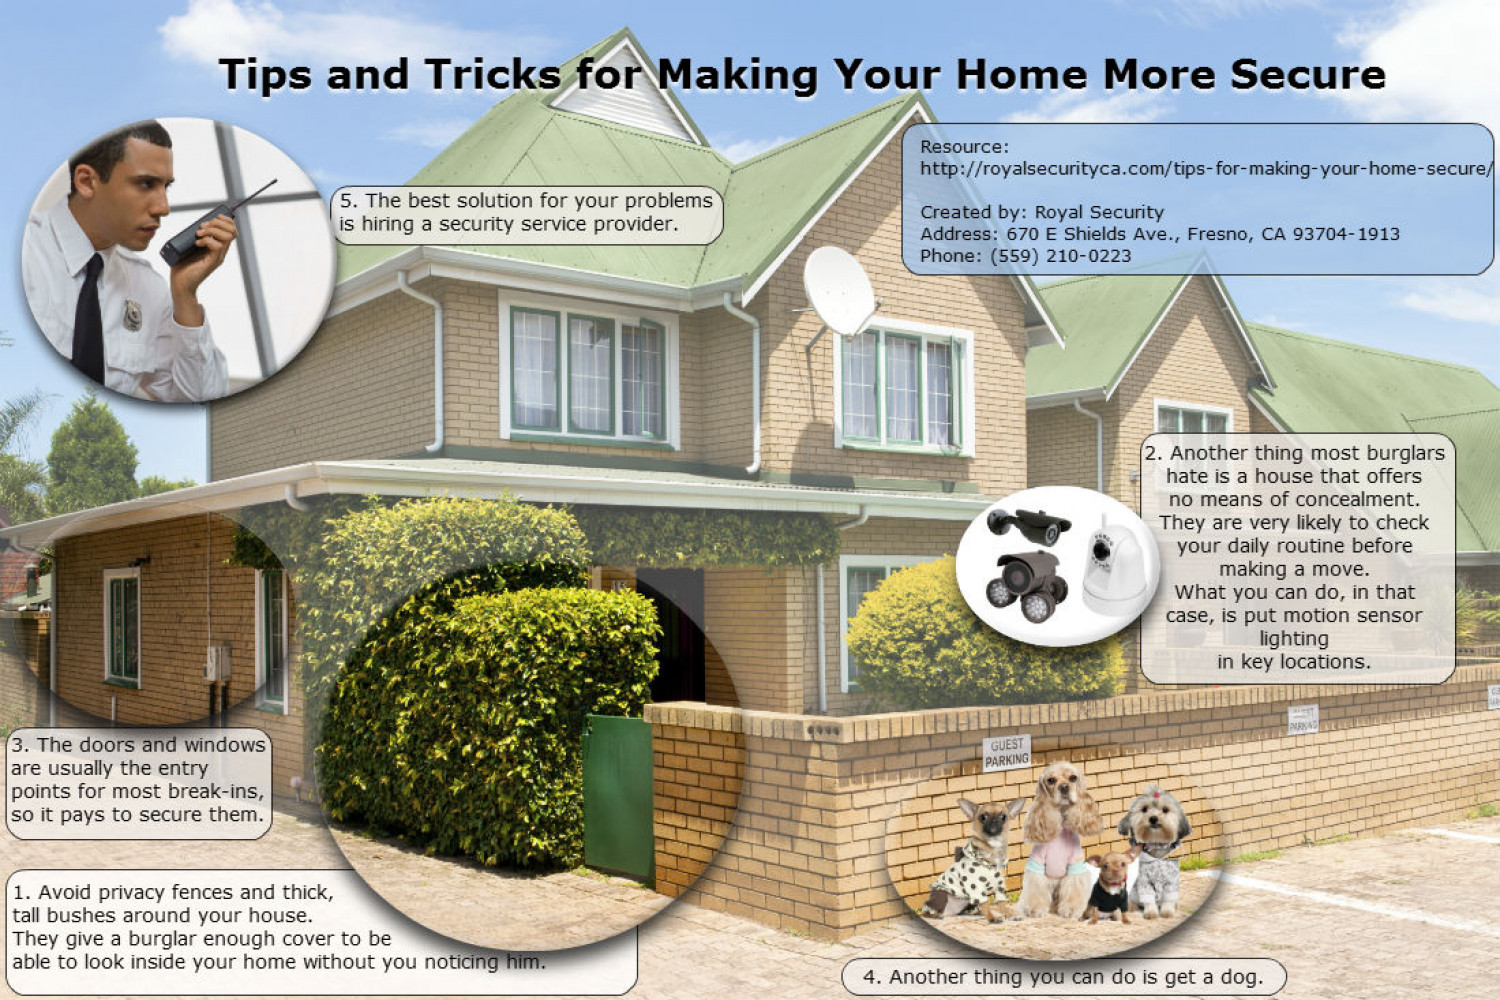 Tips and Tricks for Making Your Home More Secure by Royal Security  Infographic